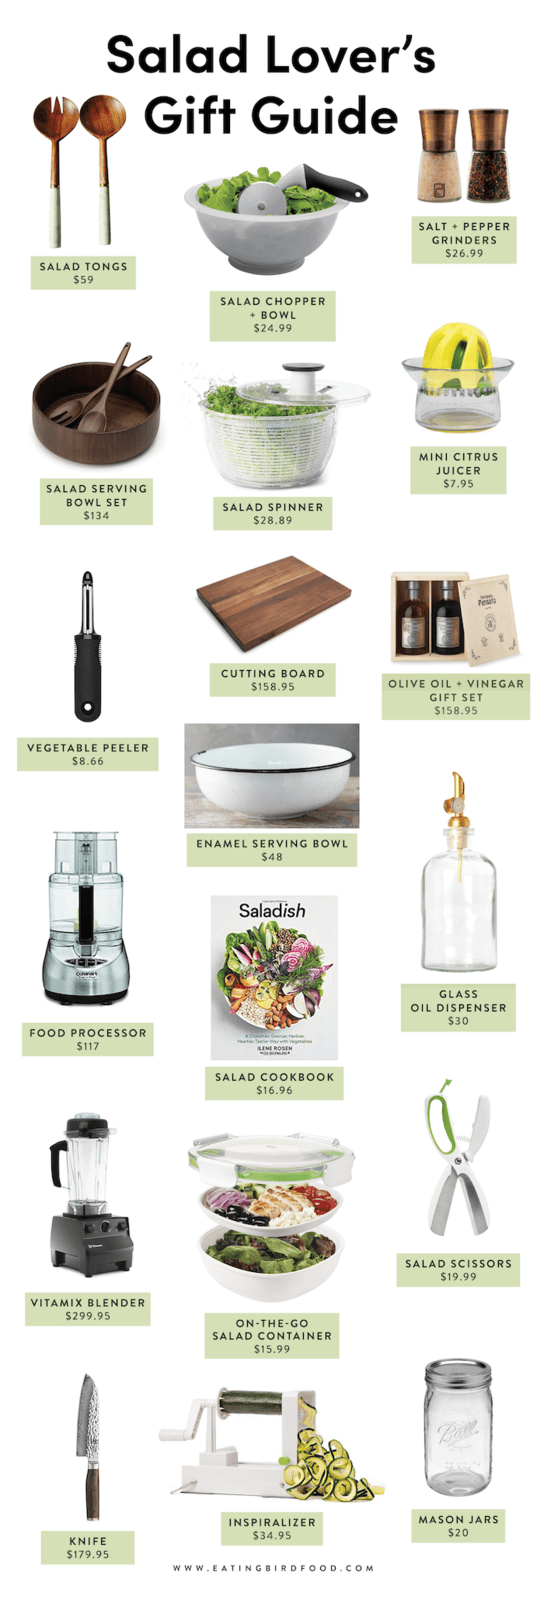 A graphic with gift ideas for salad lovers.